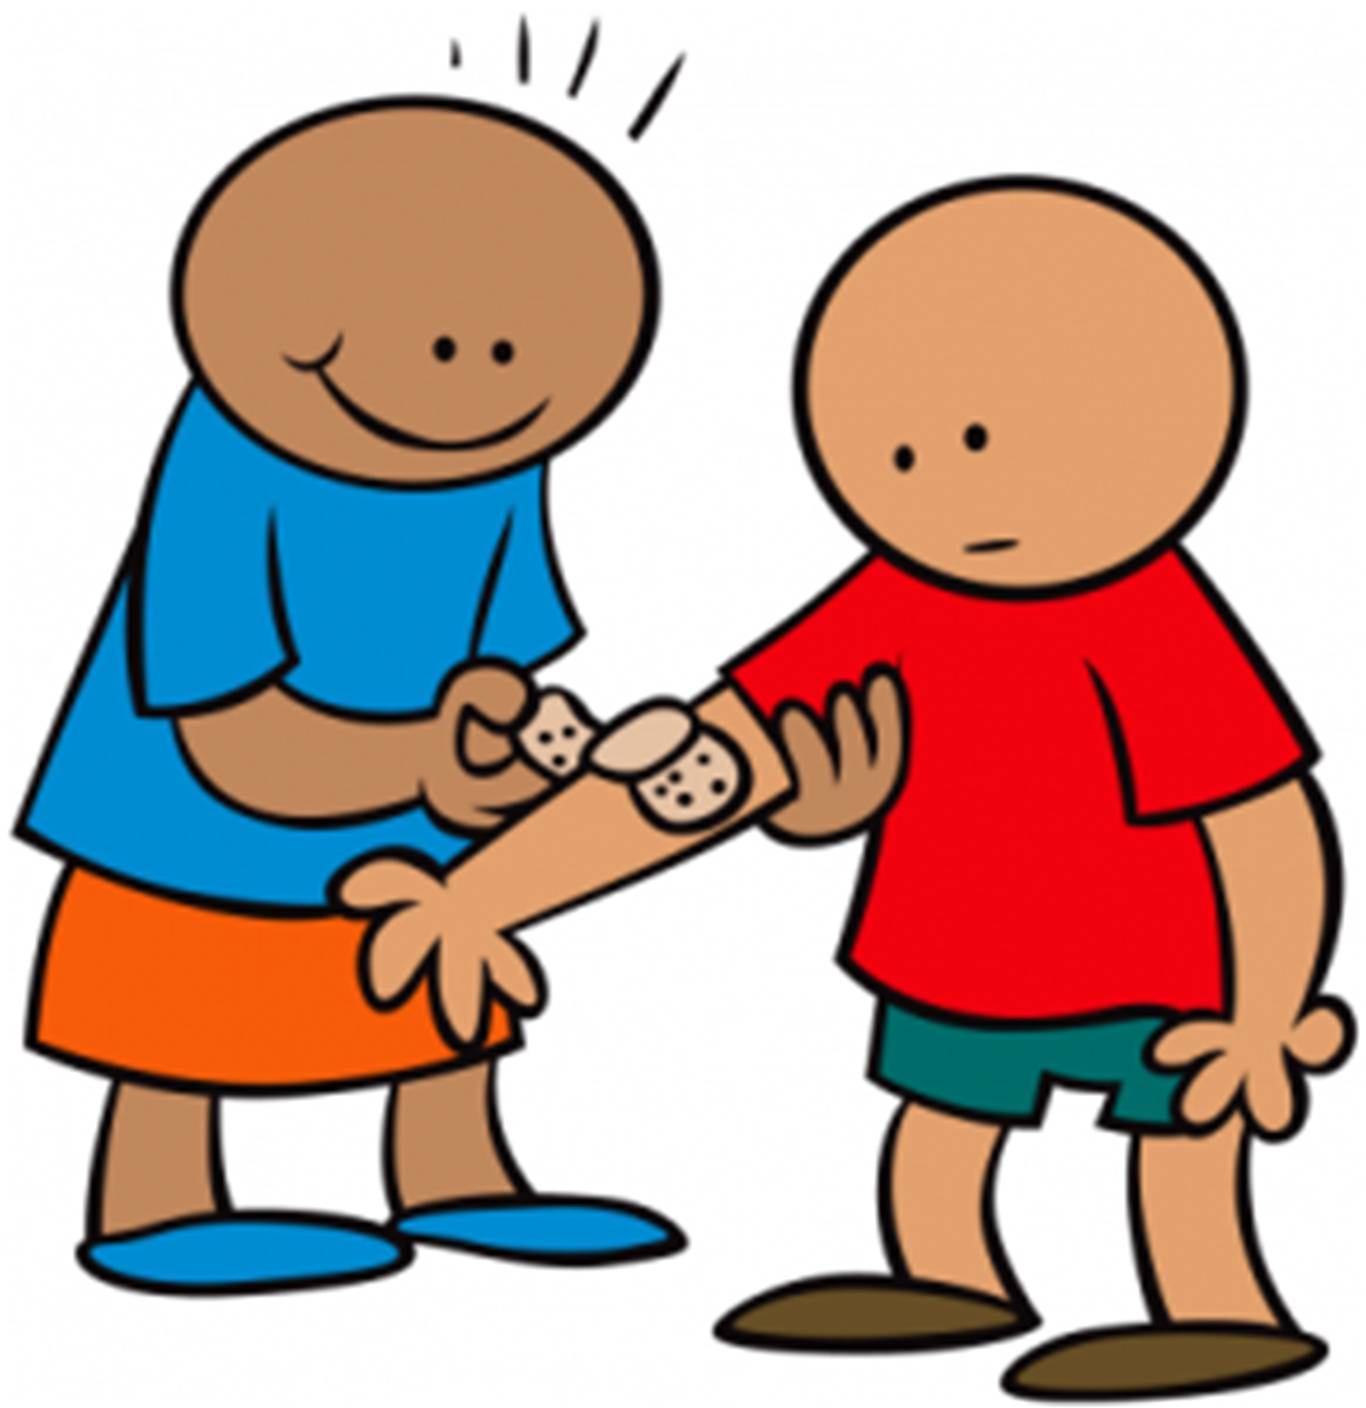 Acts of kindness race clipart clipart images gallery for.